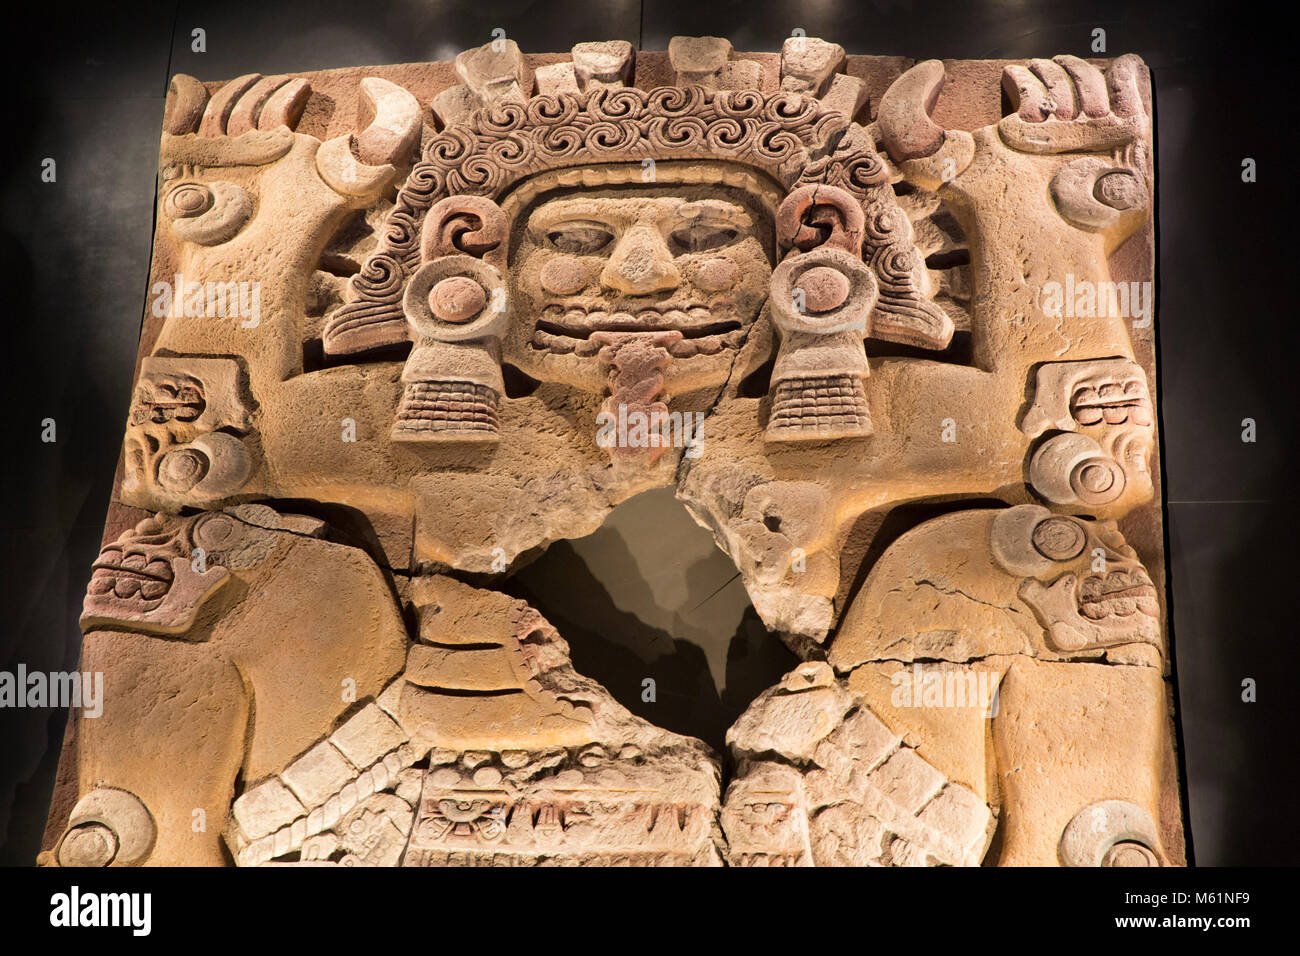 Aztec stone carving templo mayor stock photos & aztec stone carving